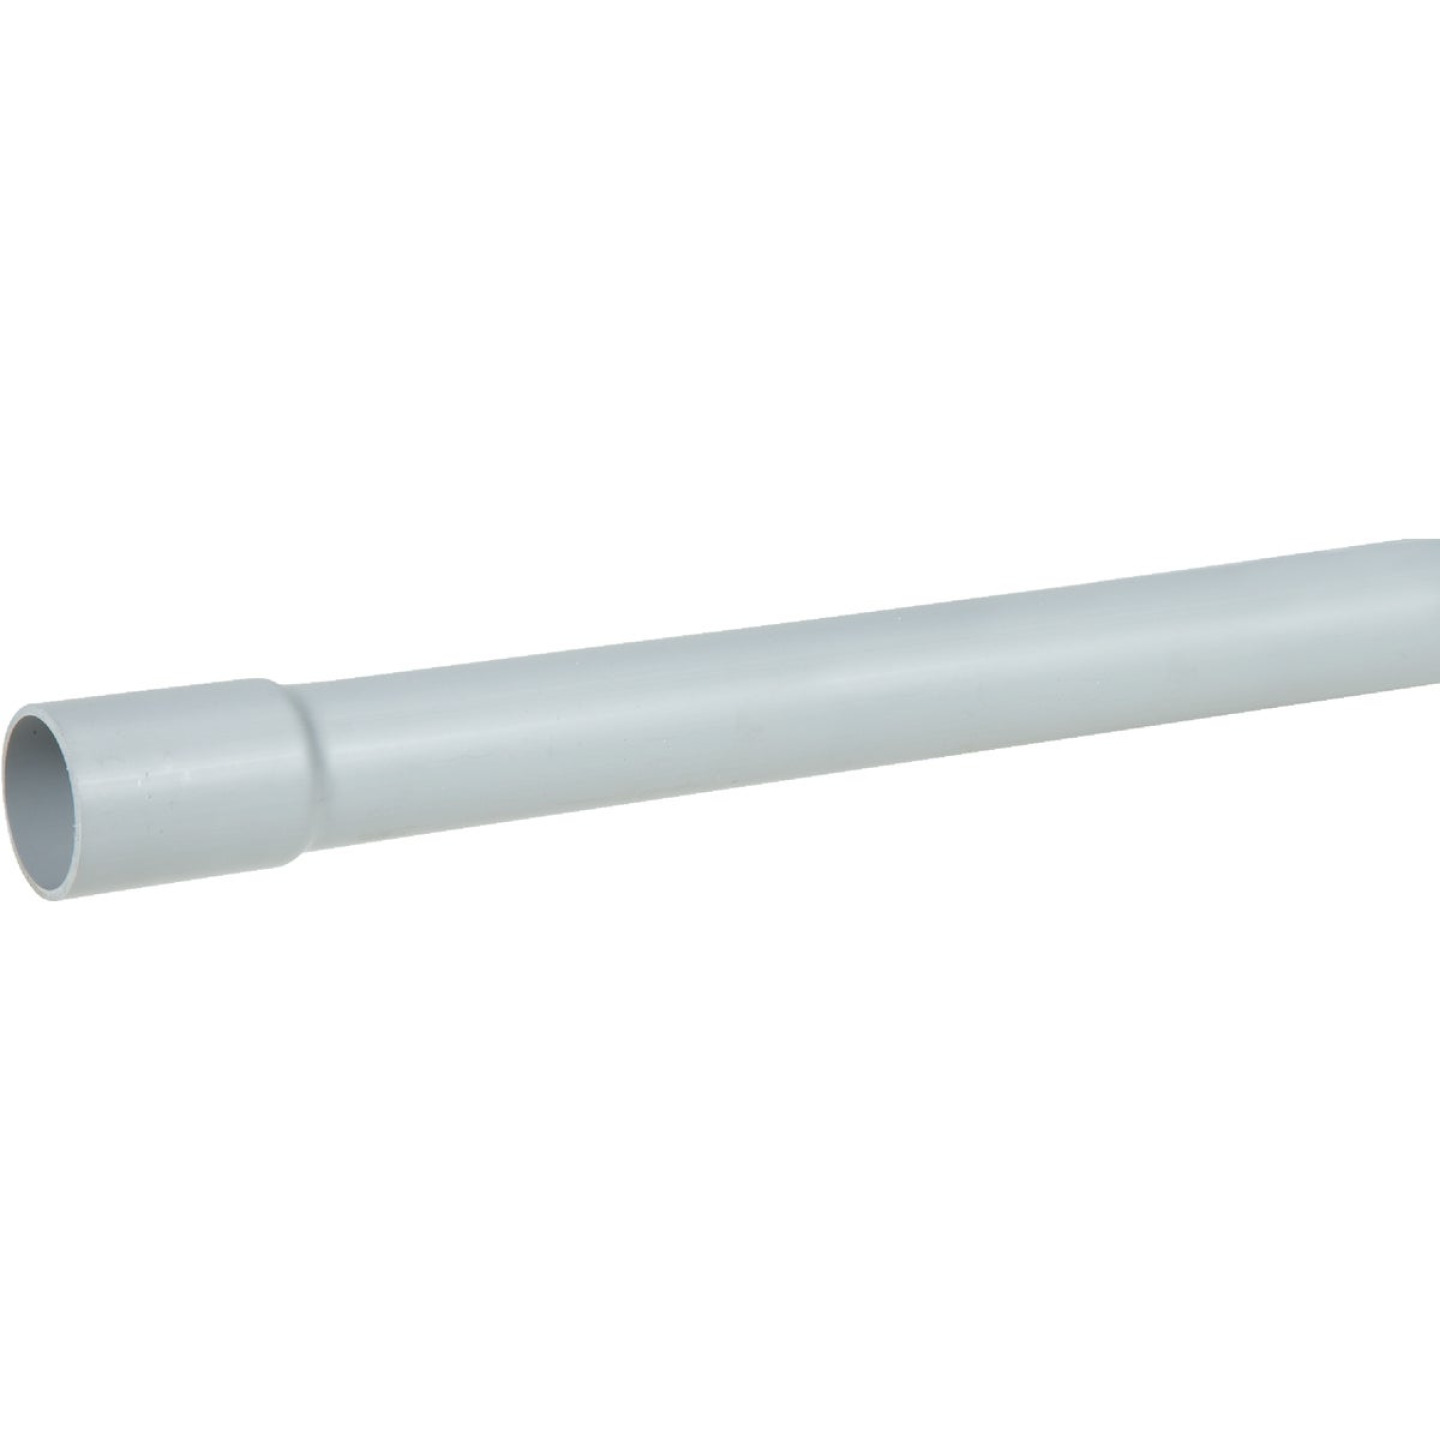 Allied 3 In. x 10 Ft. Schedule 80 PVC Conduit Image 1